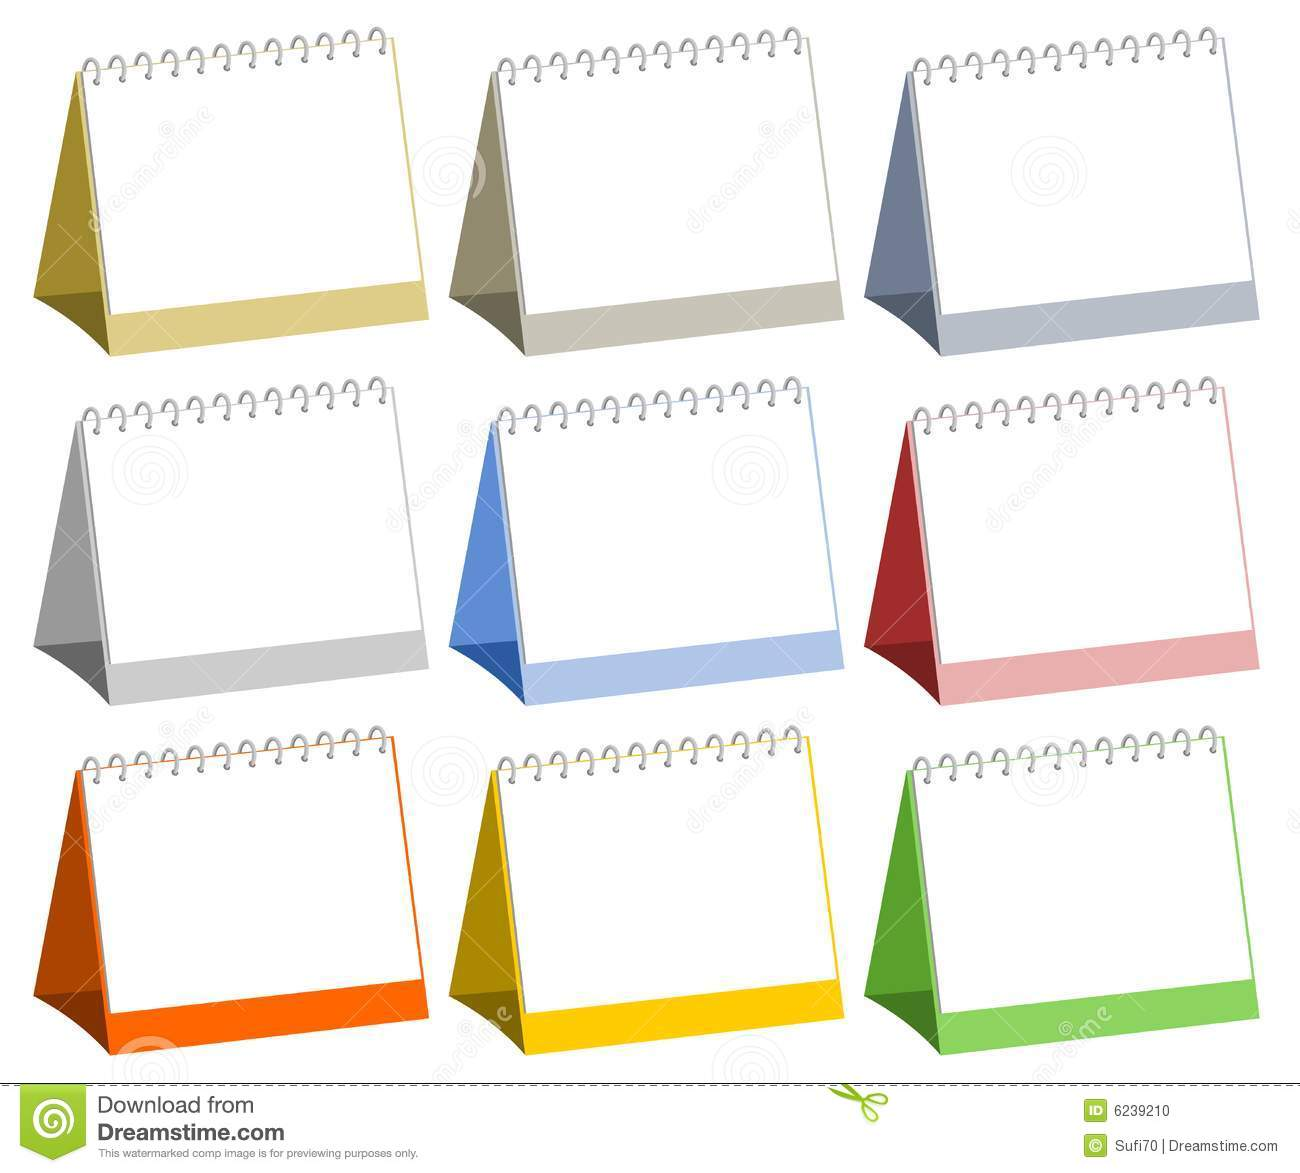 Vector illustration of colorful blank table calendars.